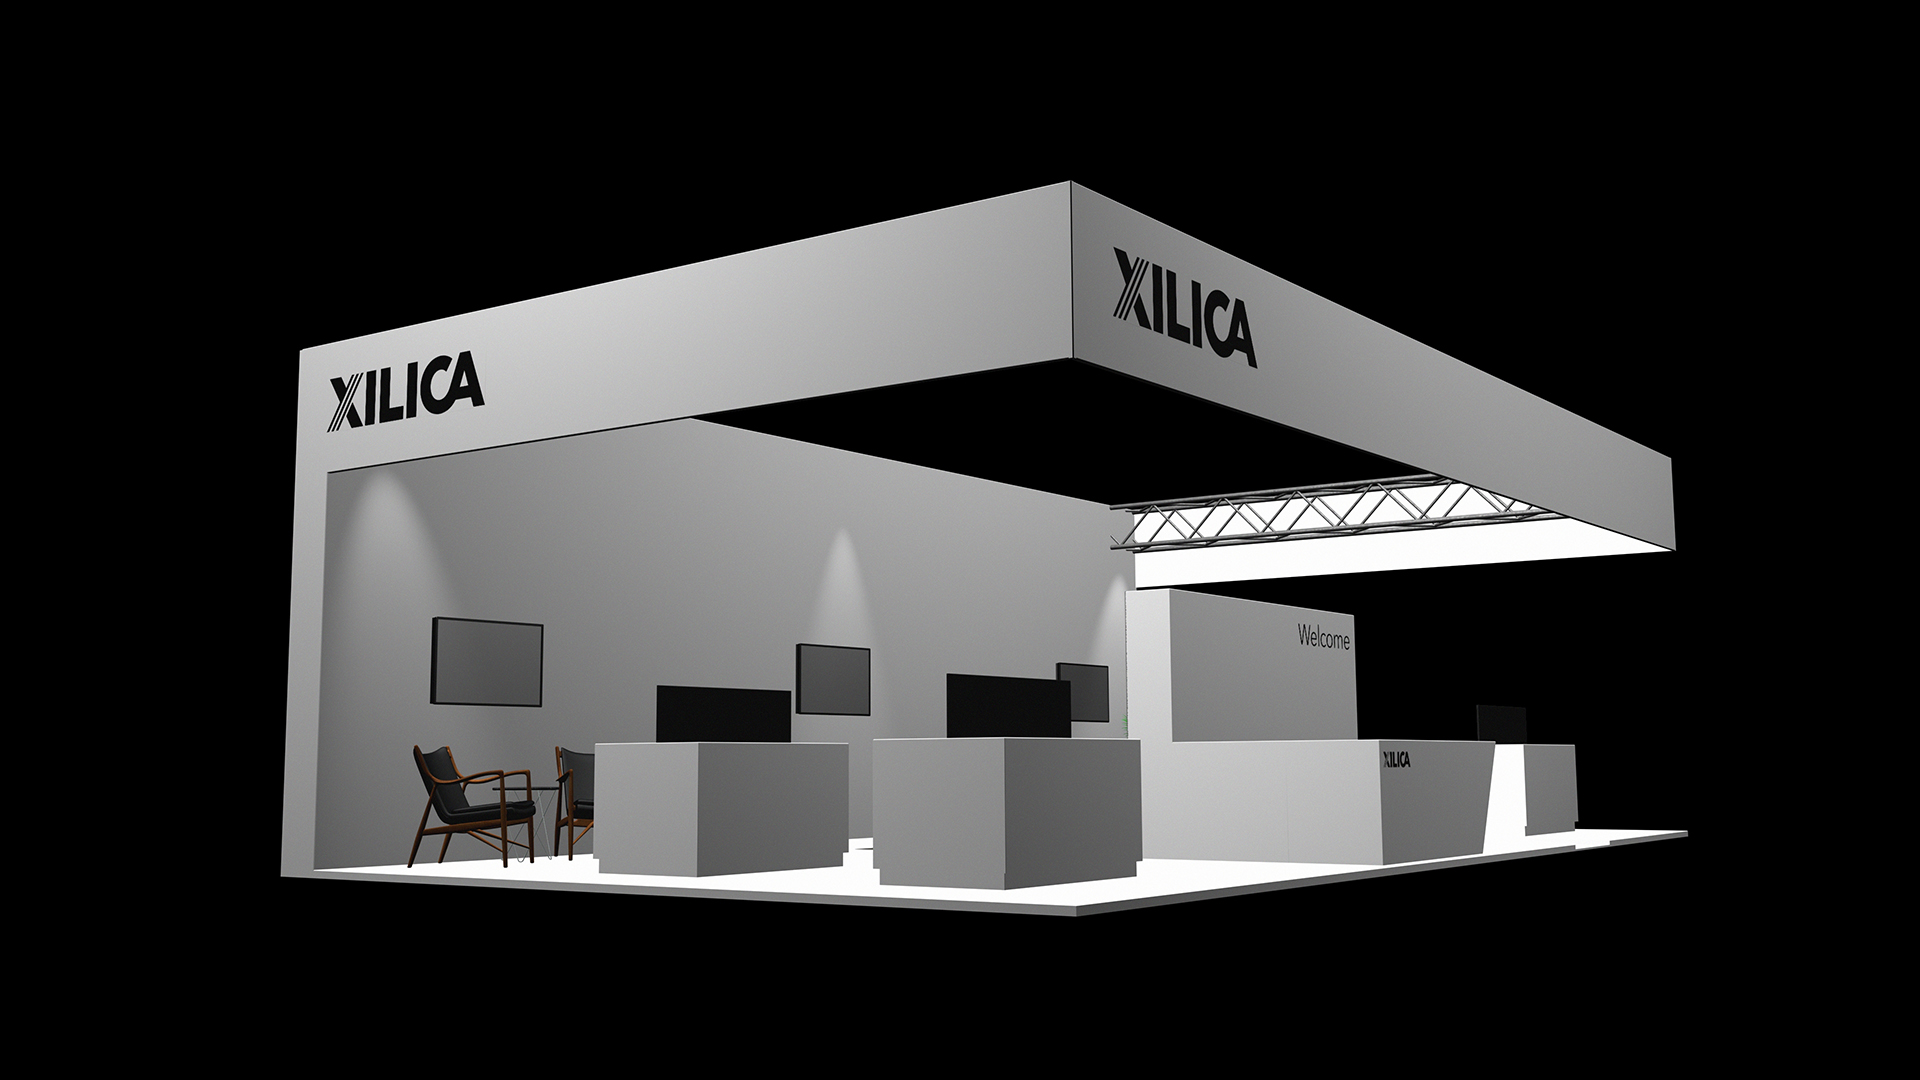 Simple three dimensional event stand designs which help the client visualise their sales environment.